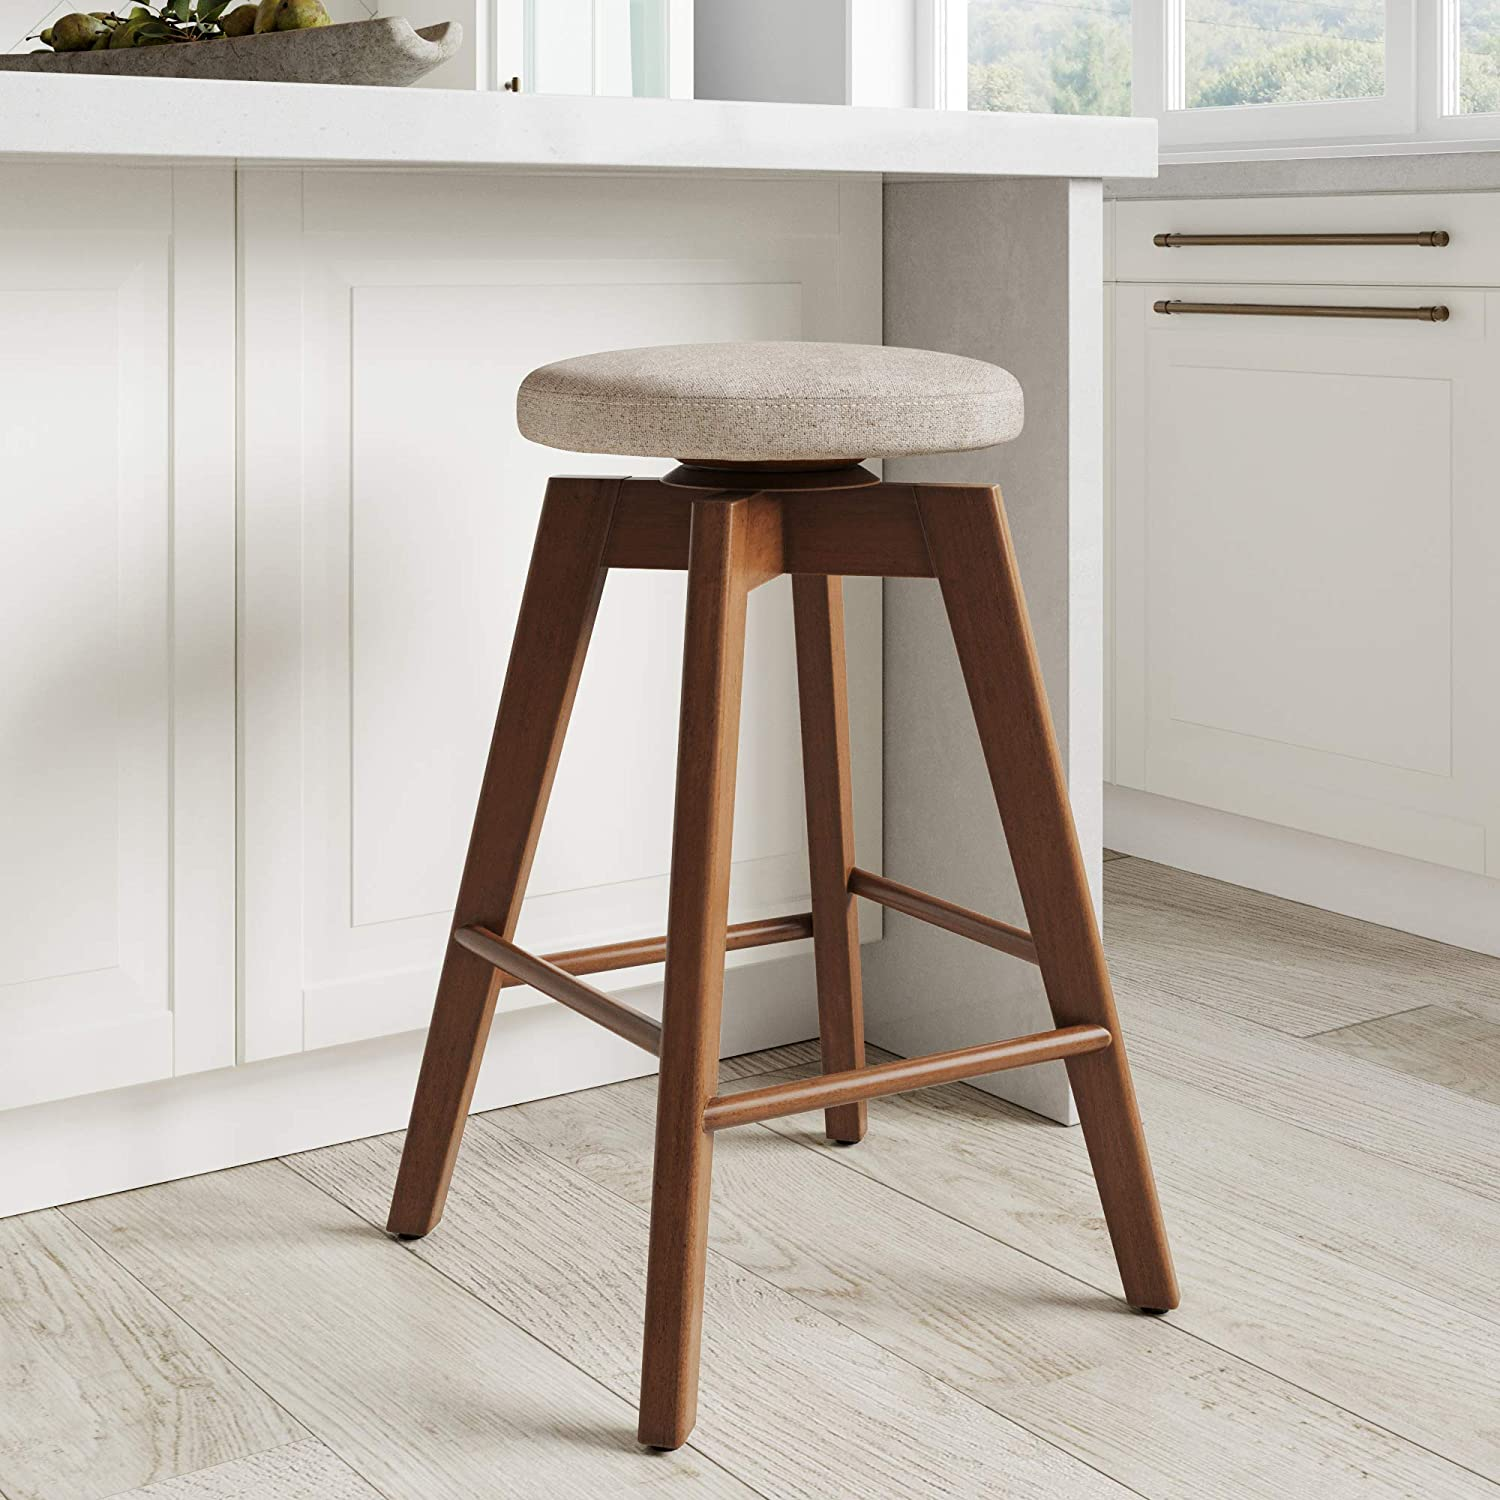 Nathan James Amalia Backless Kitchen Counter Height Bar Stool, Solid Wood  with 9 Swivel Seat, Natural Wheat/Antique Coffee